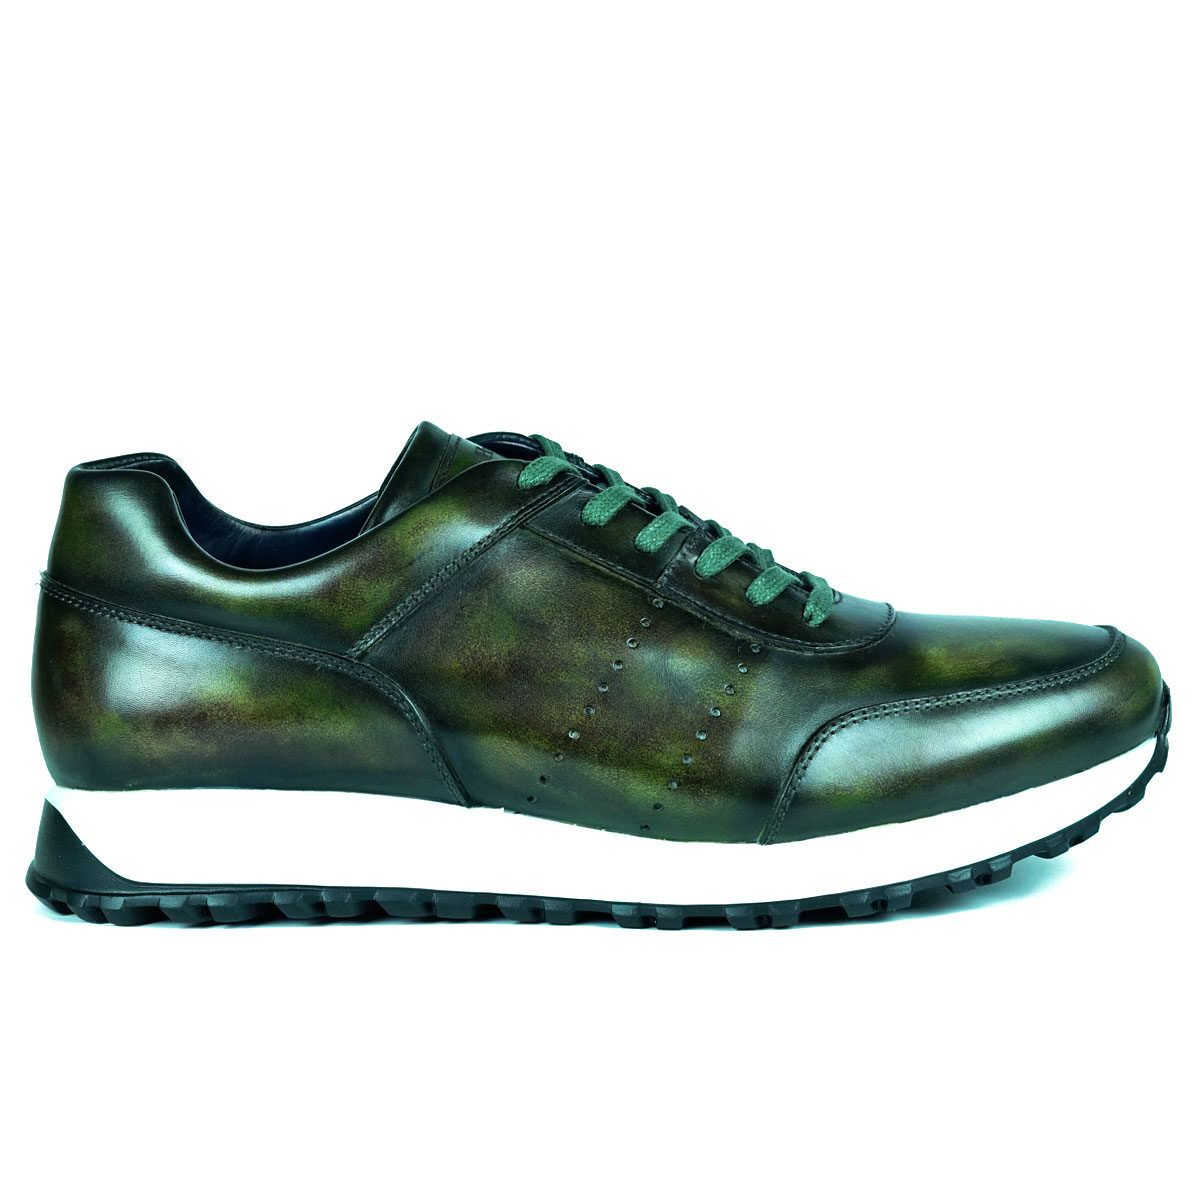 Mens Green Sneakers Shoes